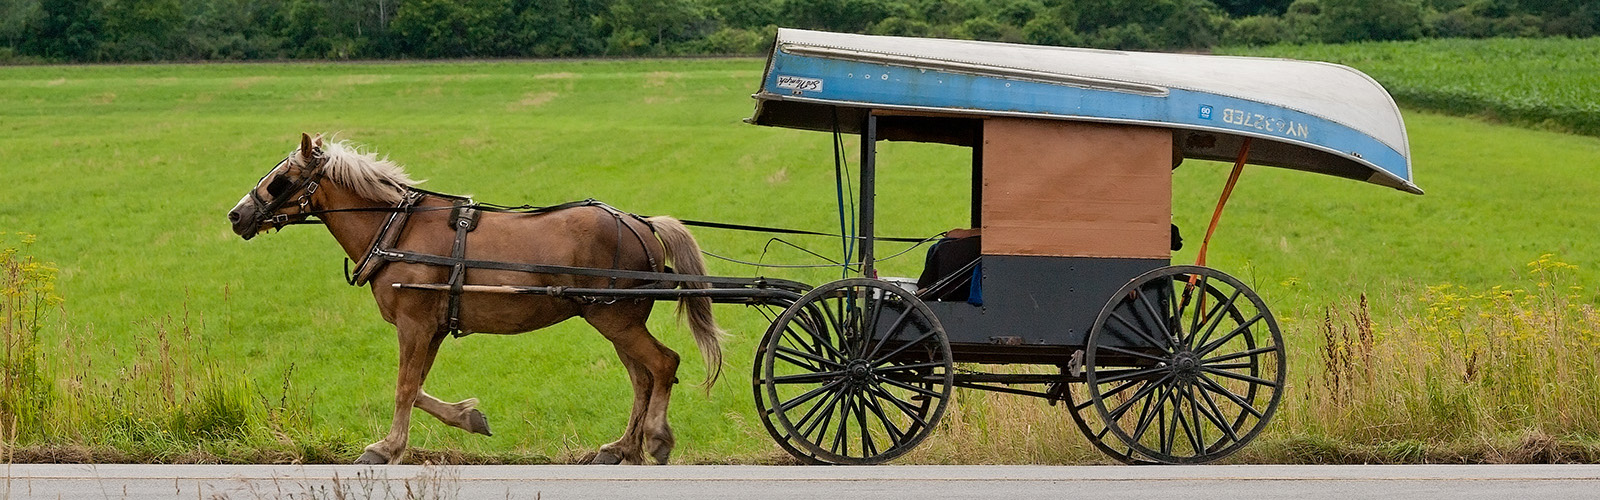 Amish recreation on route 5, the old King's Highway